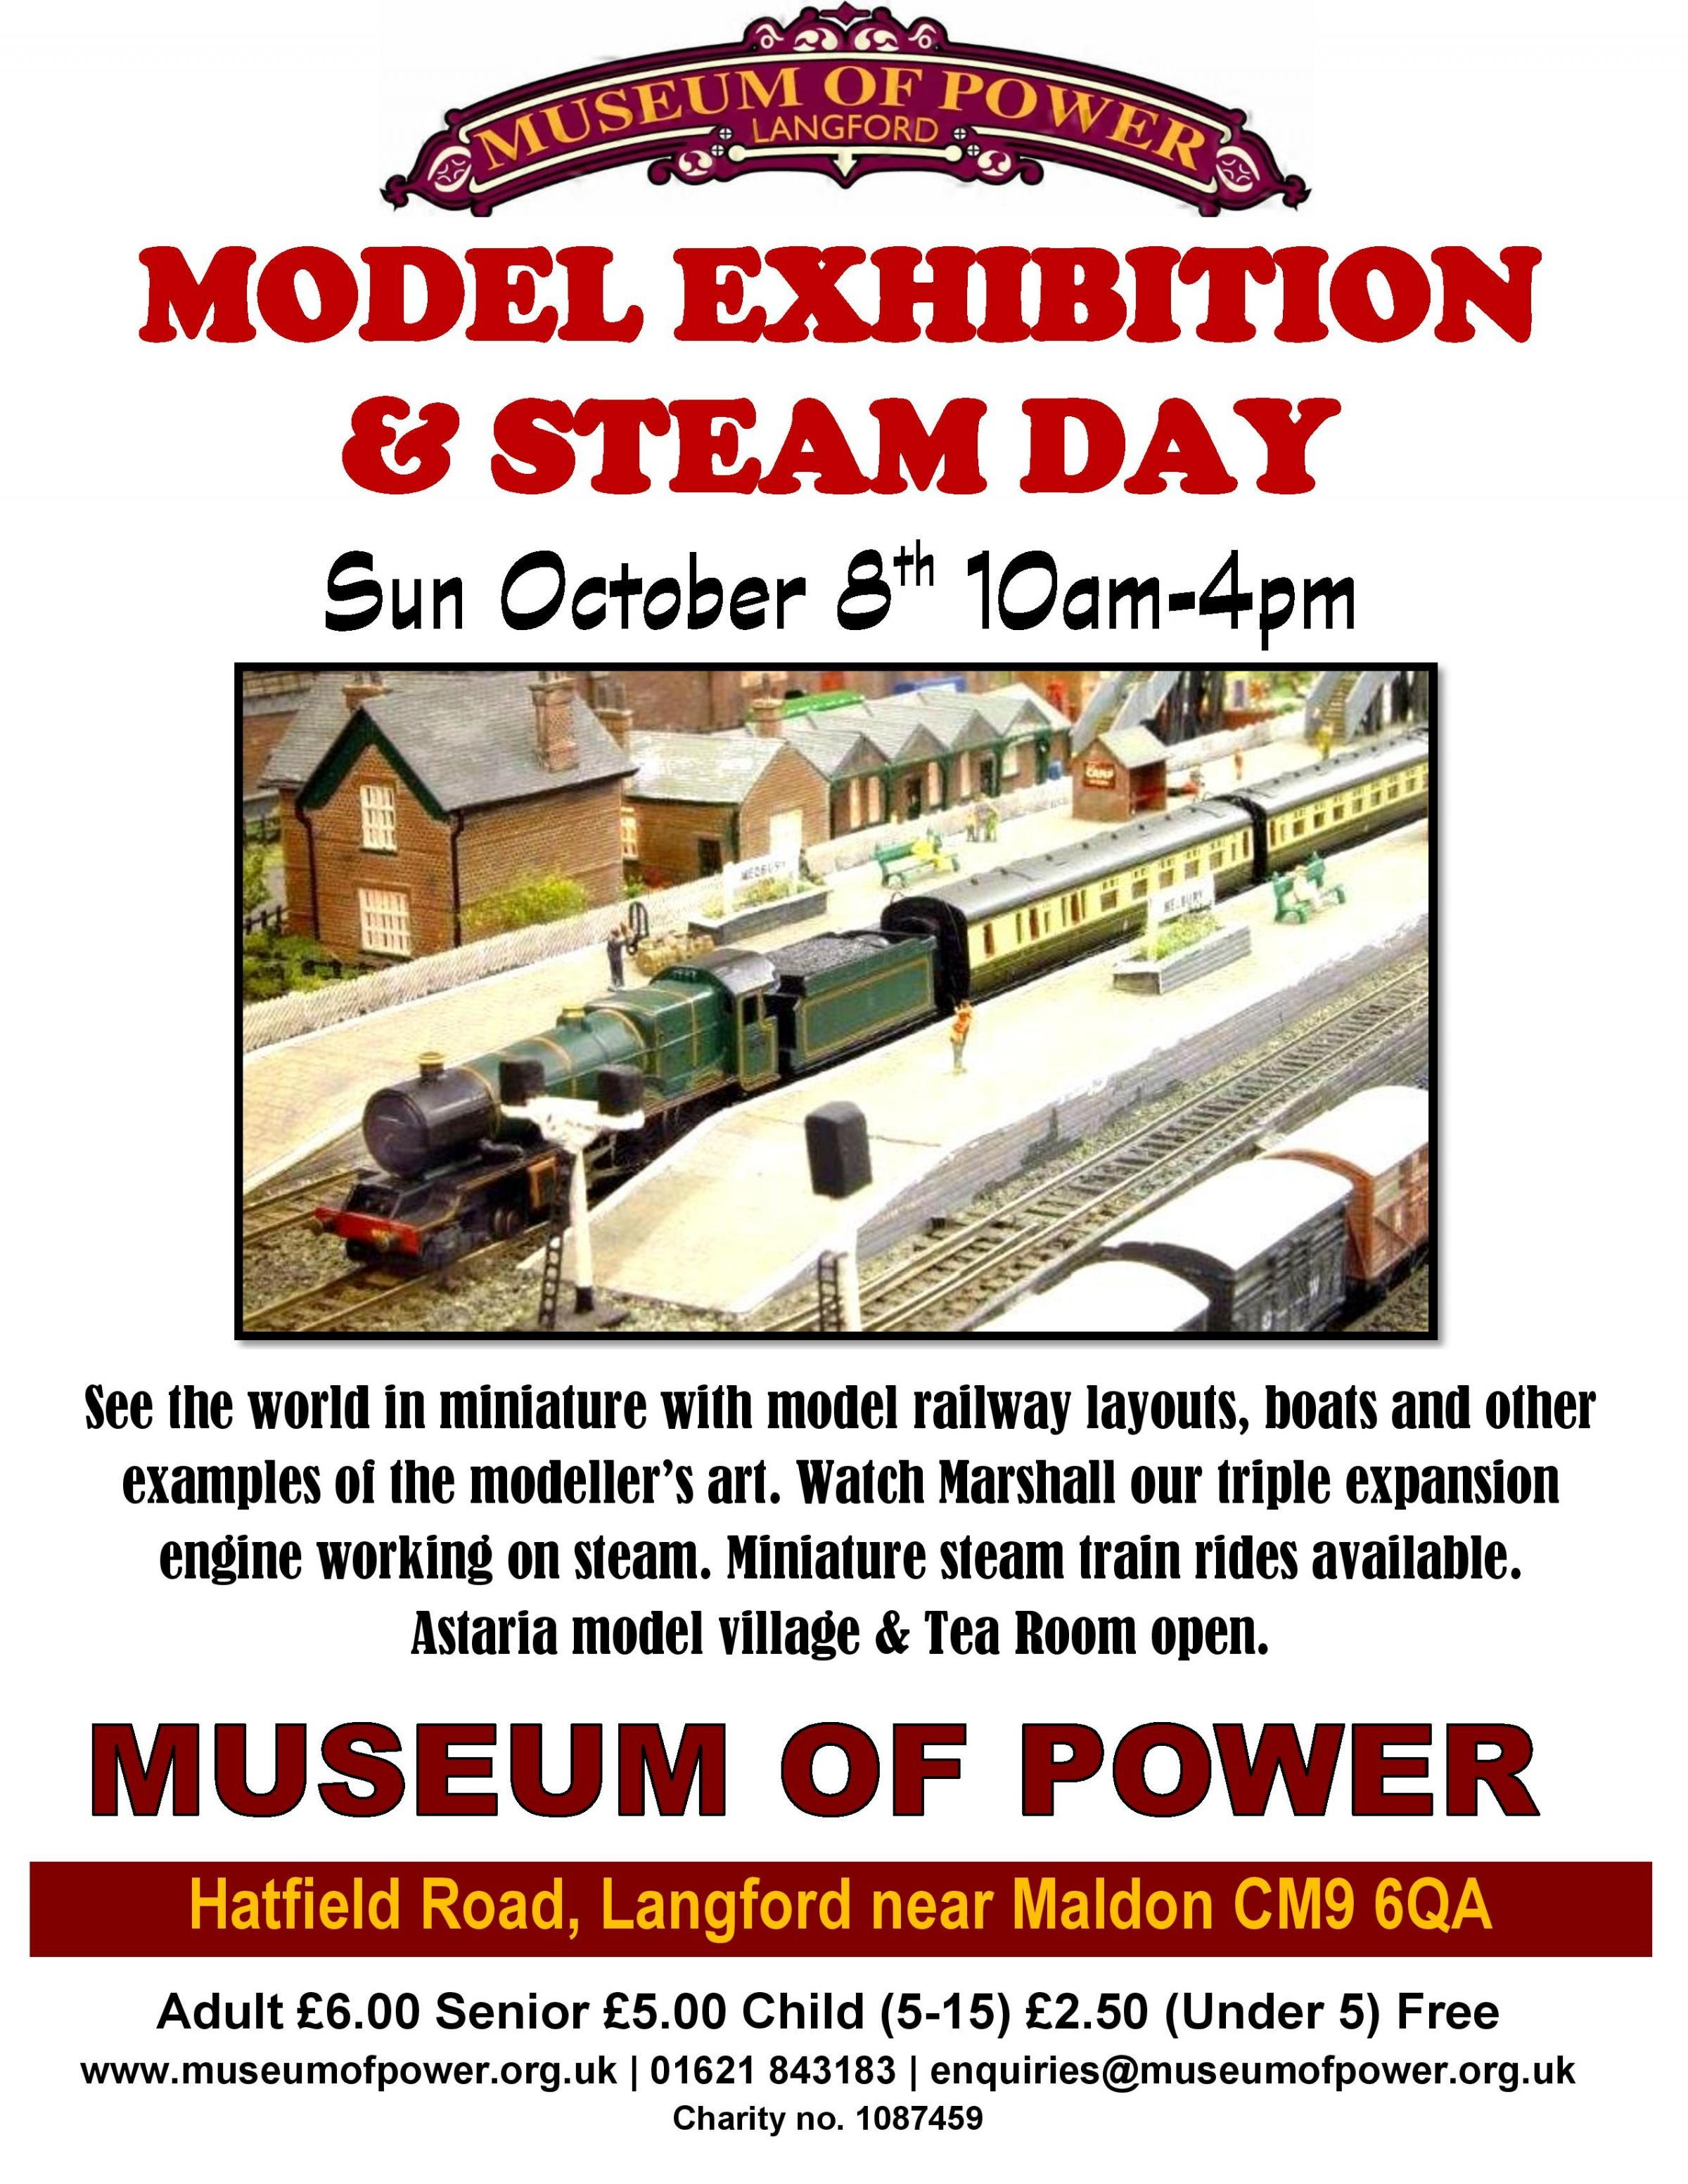 Model Exhibition & Steam Day